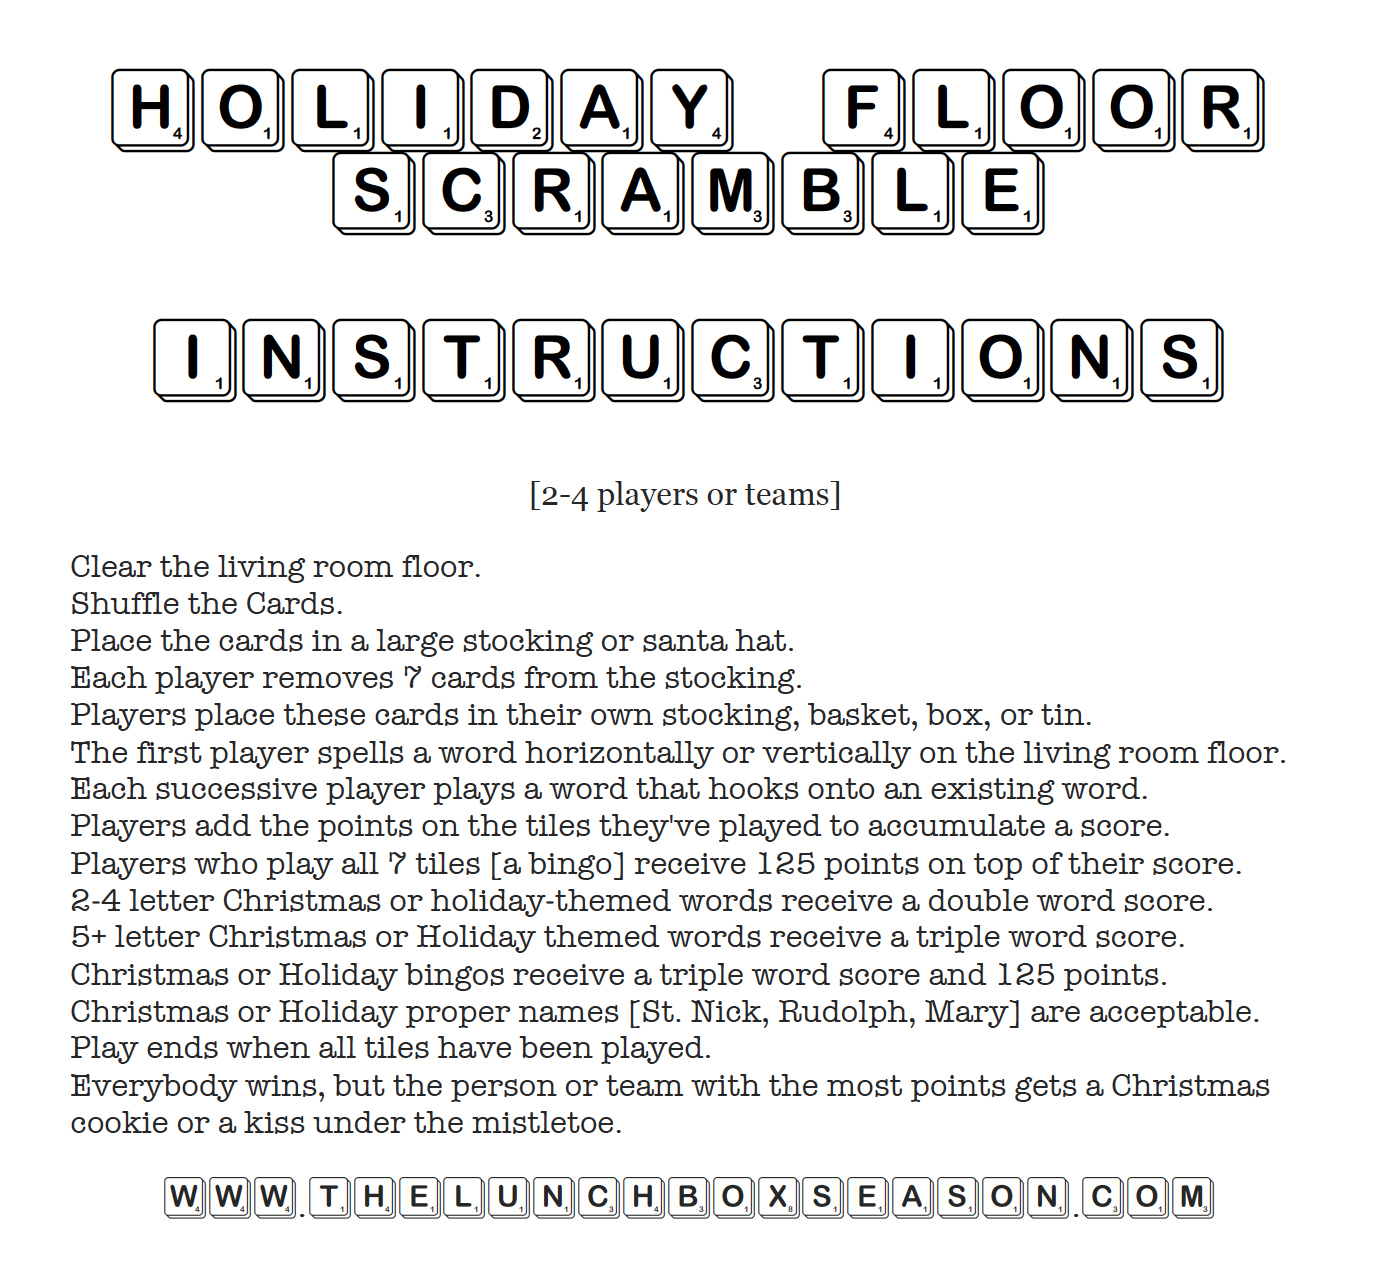 ... , Day 14: Make and Play Holiday Floor Scramble - THE LUNCHBOX SEASON